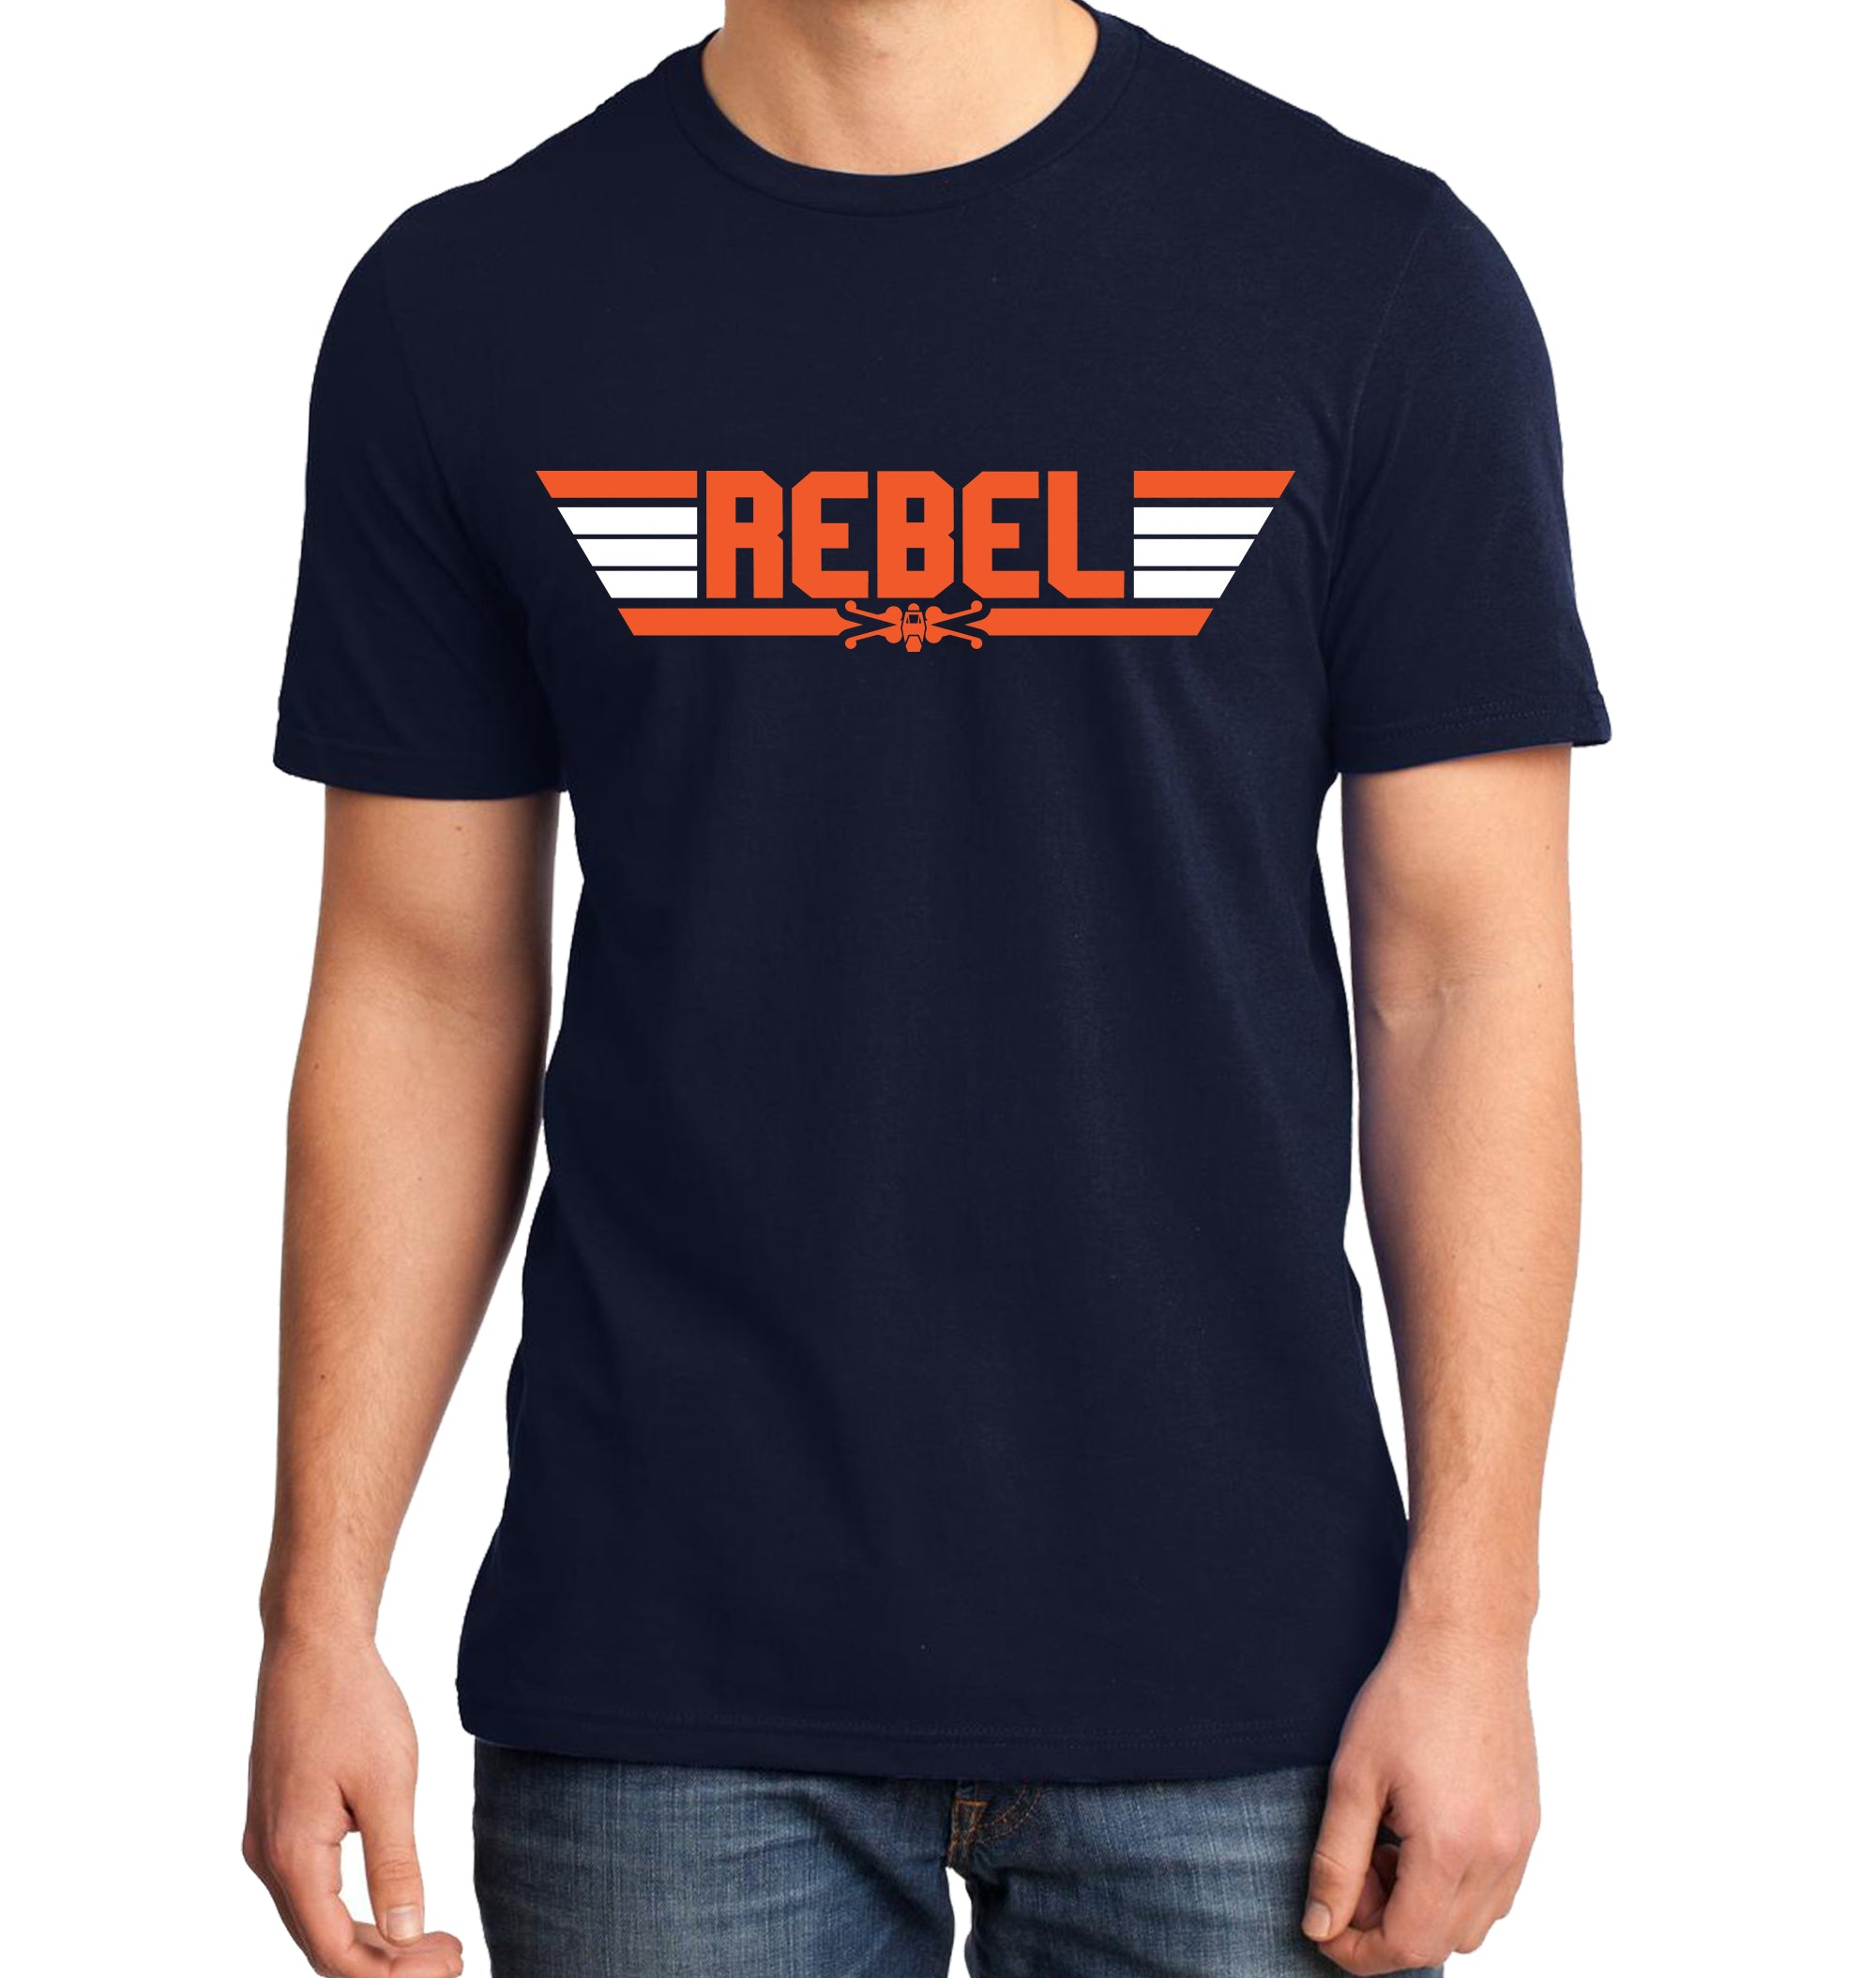 Top Gun Rebel Pilot T-Shirt